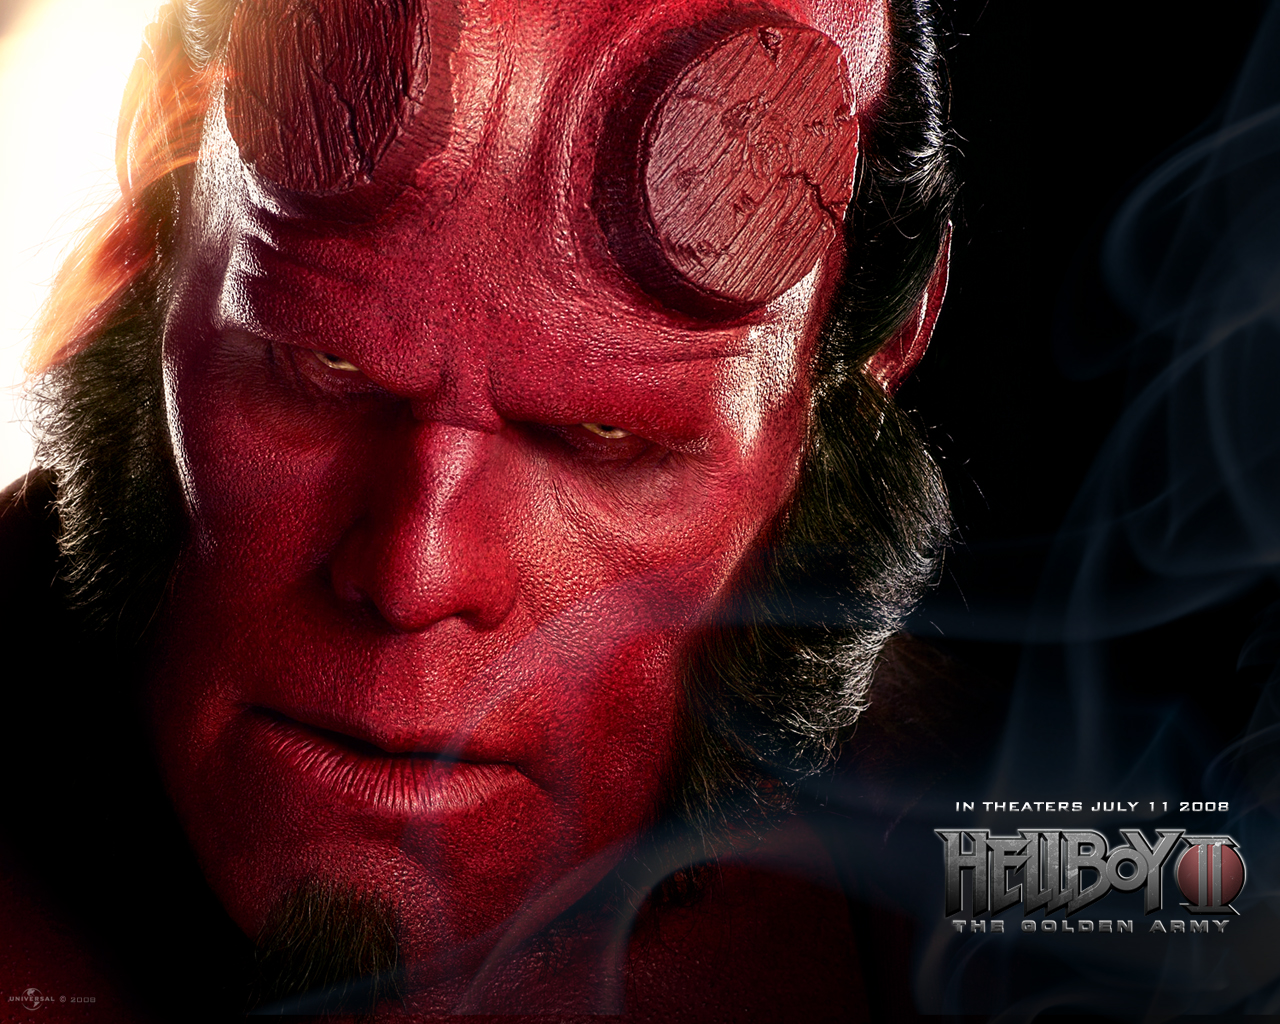 Download full size hellboy 2 the golden army wallpaper / movies